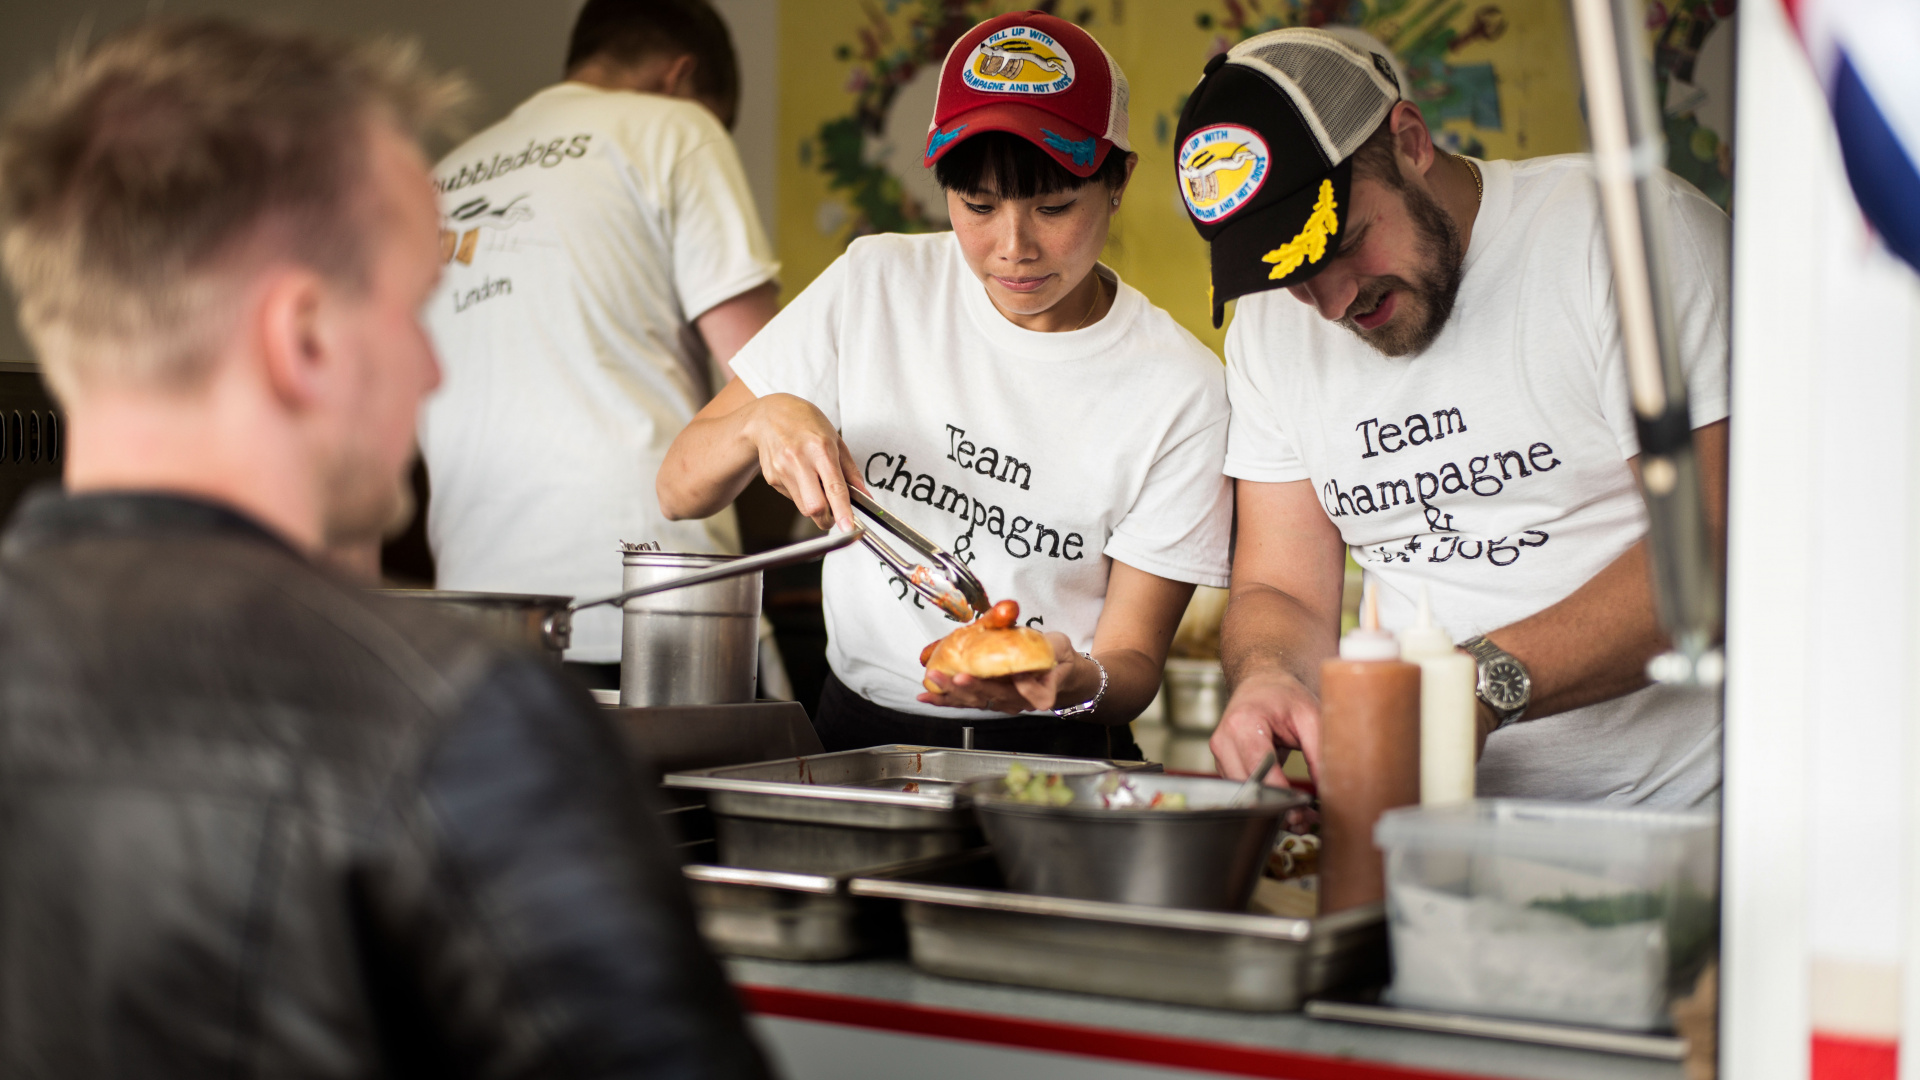 Sandia Chang and James Knappett at Copenhagen's World Hot Dog Championships